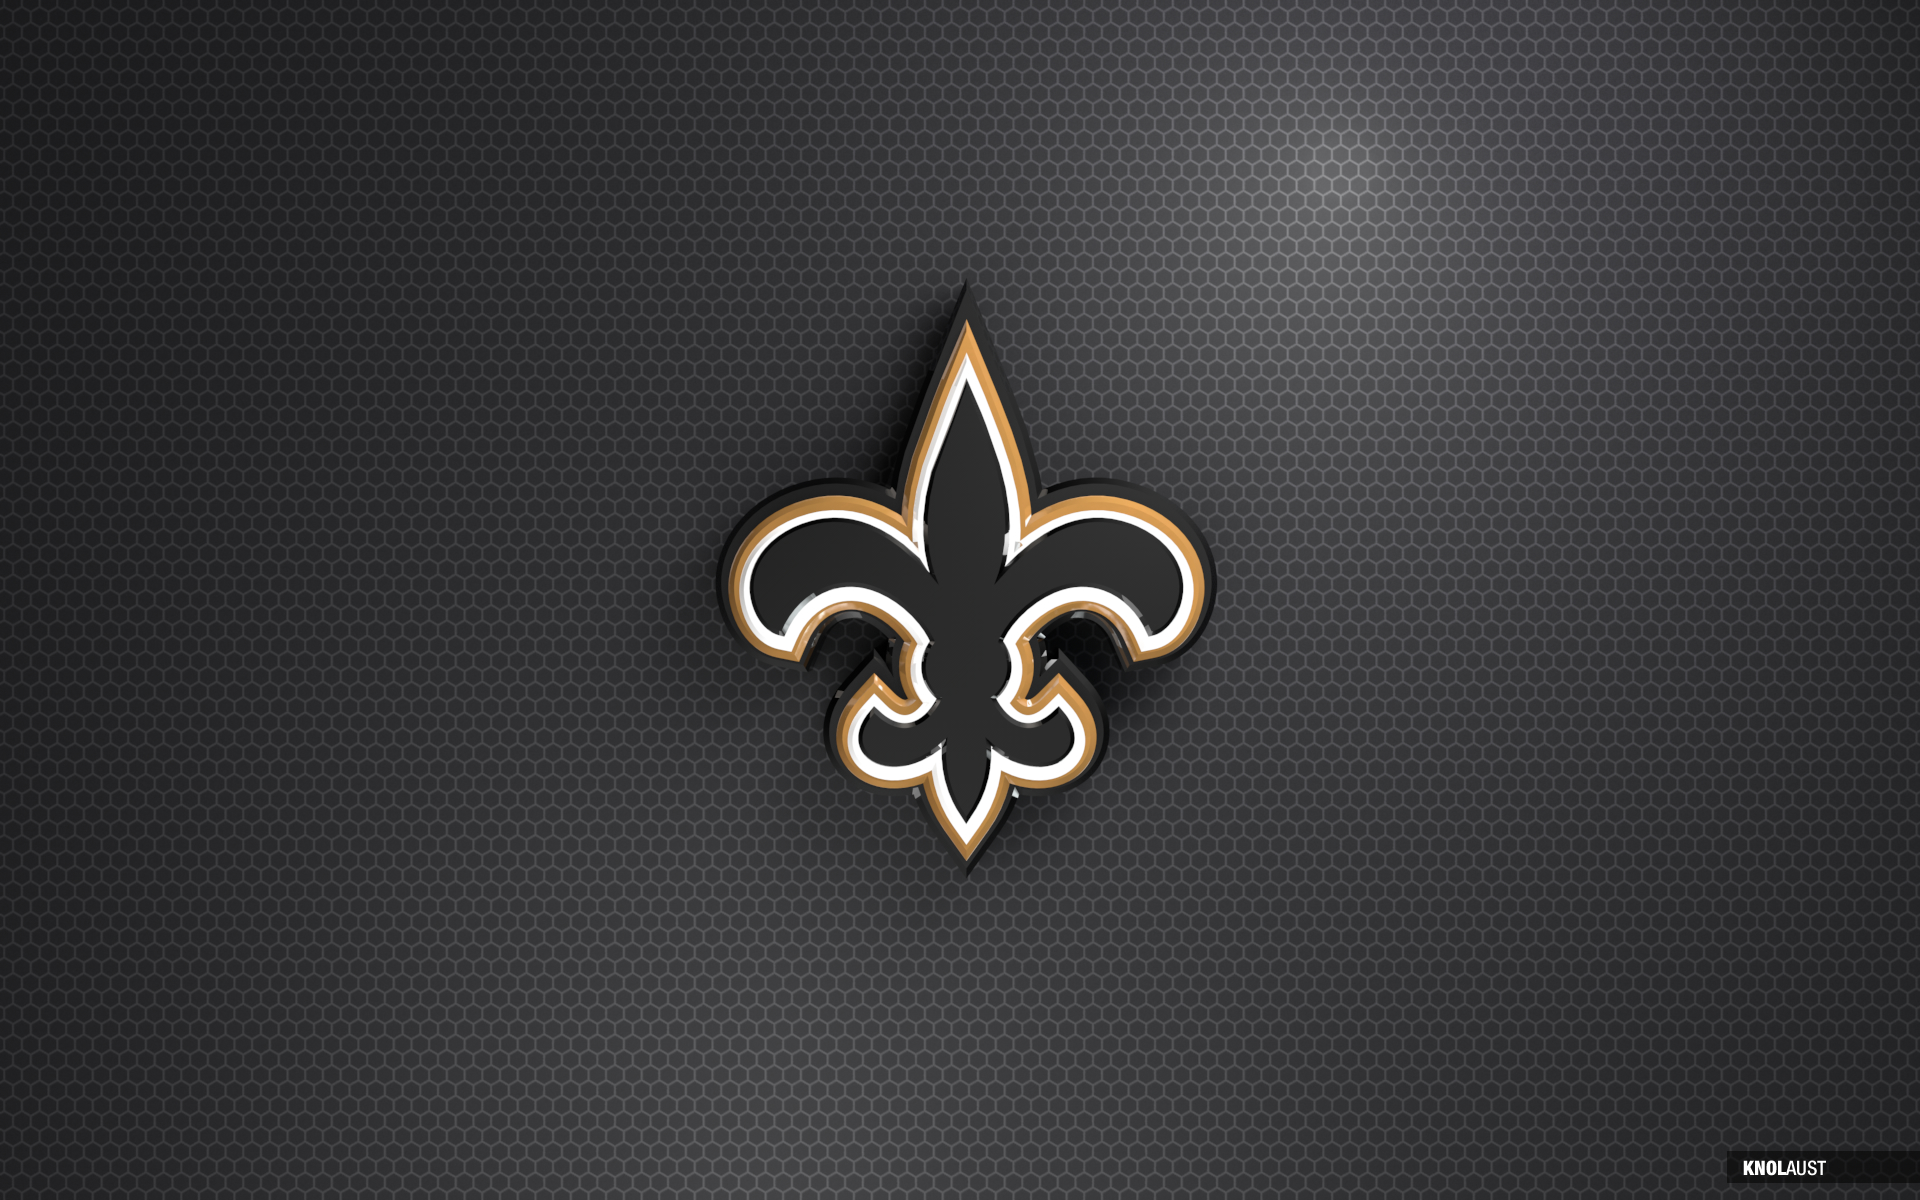 77 New Orleans Saints Wallpapers On Wallpapersafari